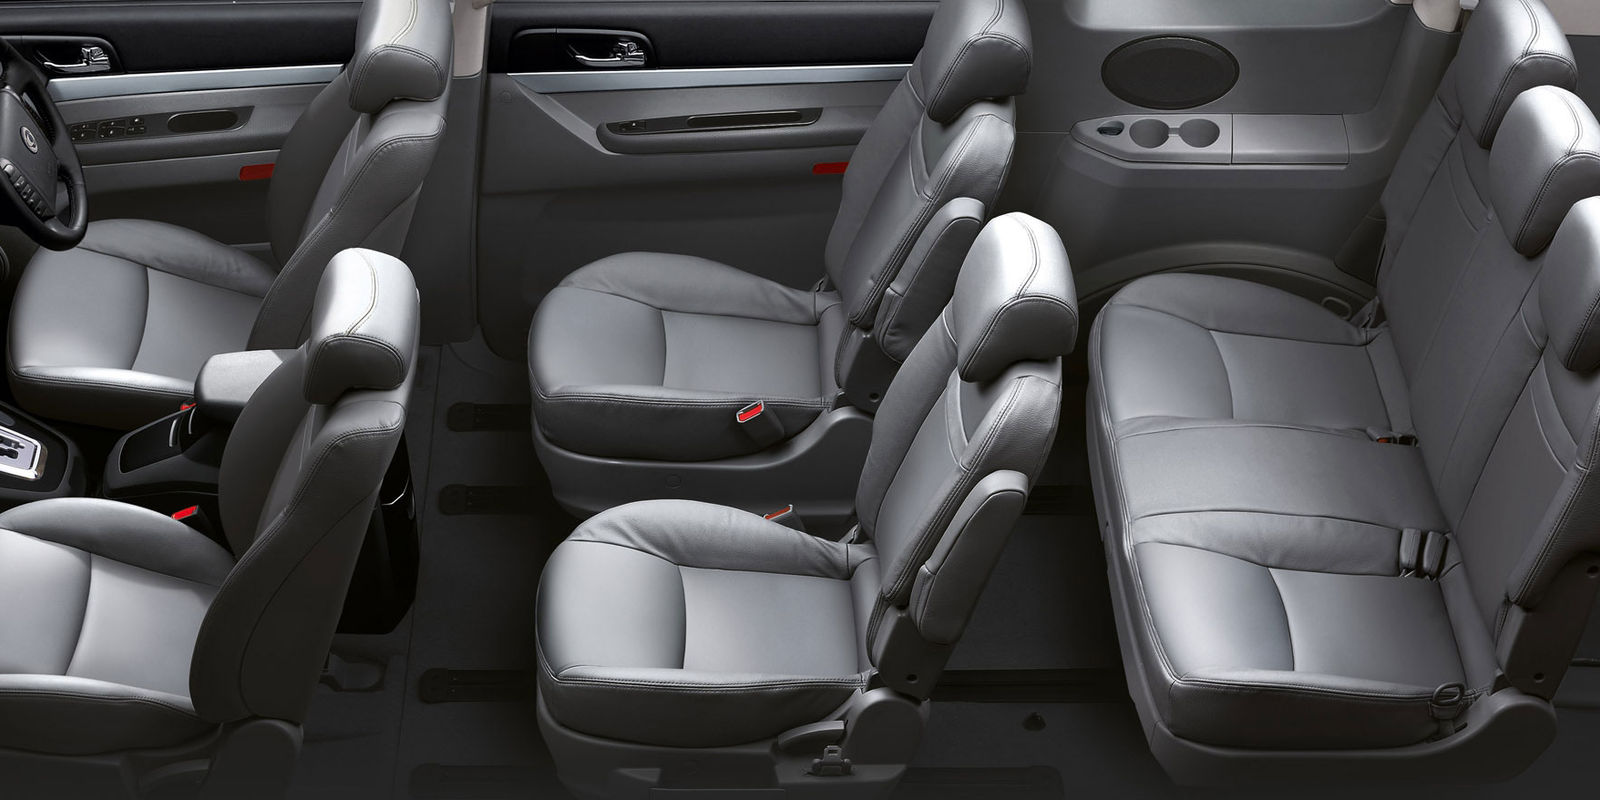 Best 7 Seat Vehicle 2013 | Autos Post